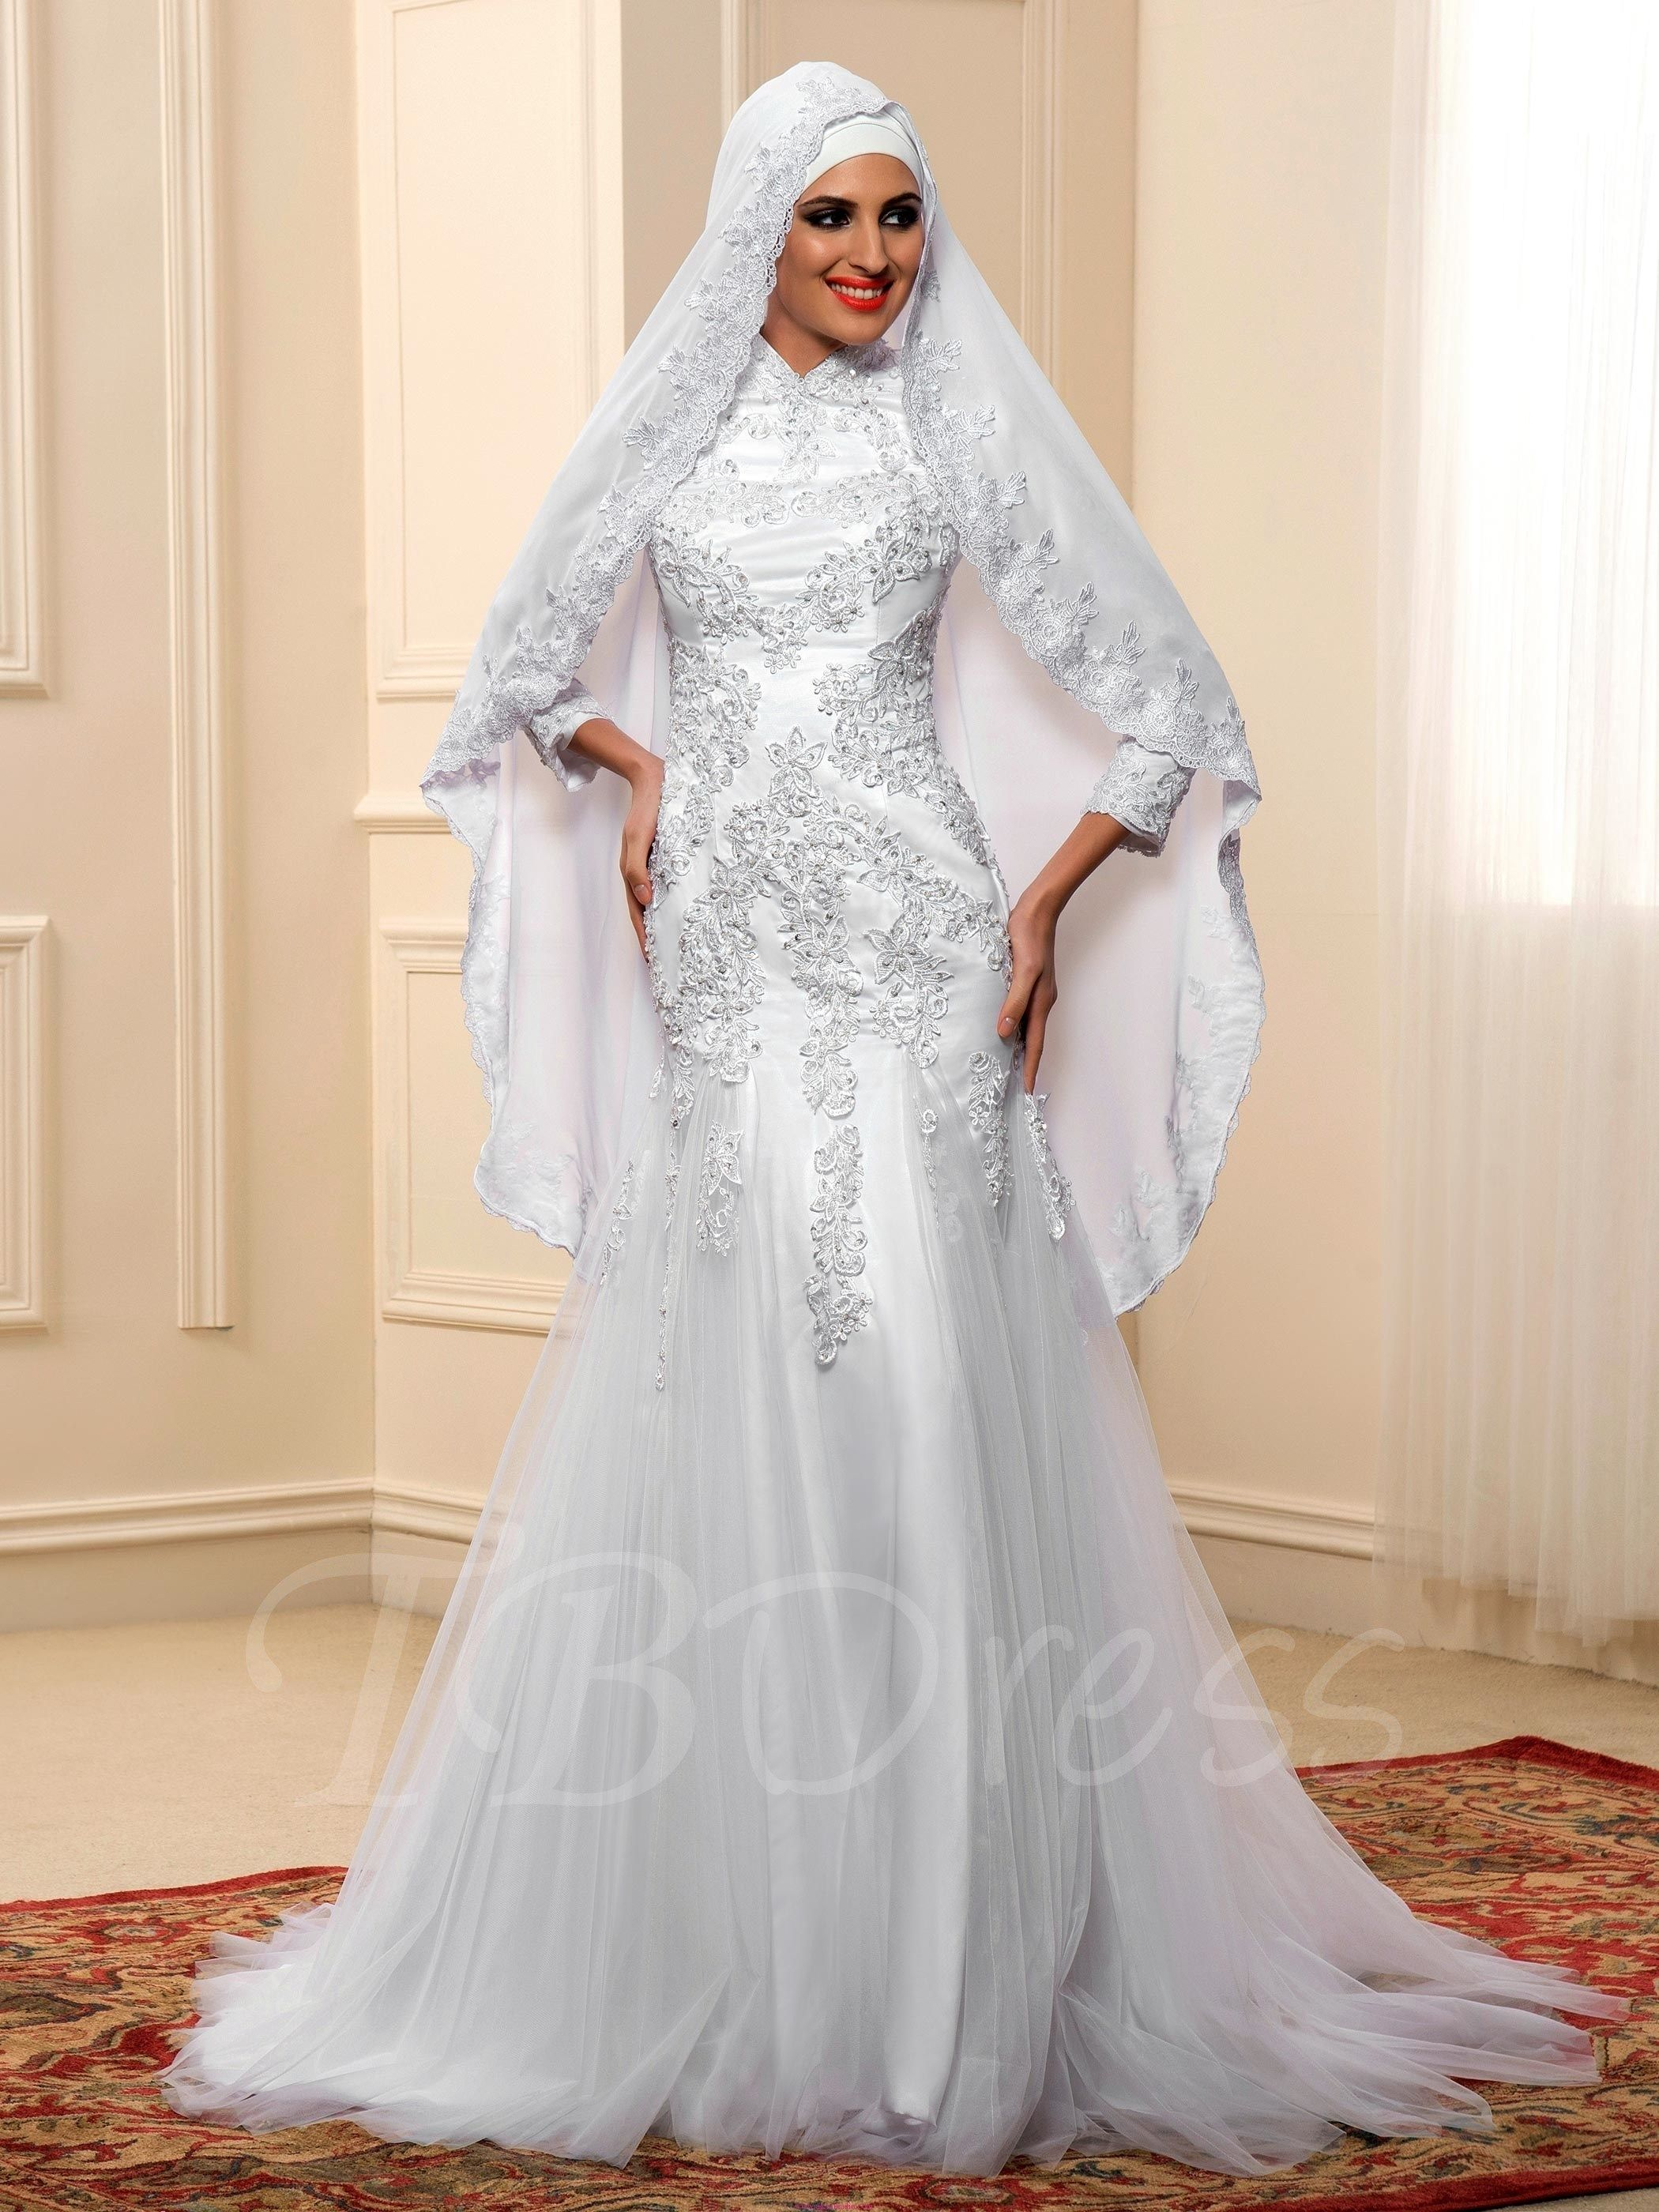 Wedding Dress Dresses Style Ideas Bride At University Of Tampa Shot By Photographer Egyptian Muslim